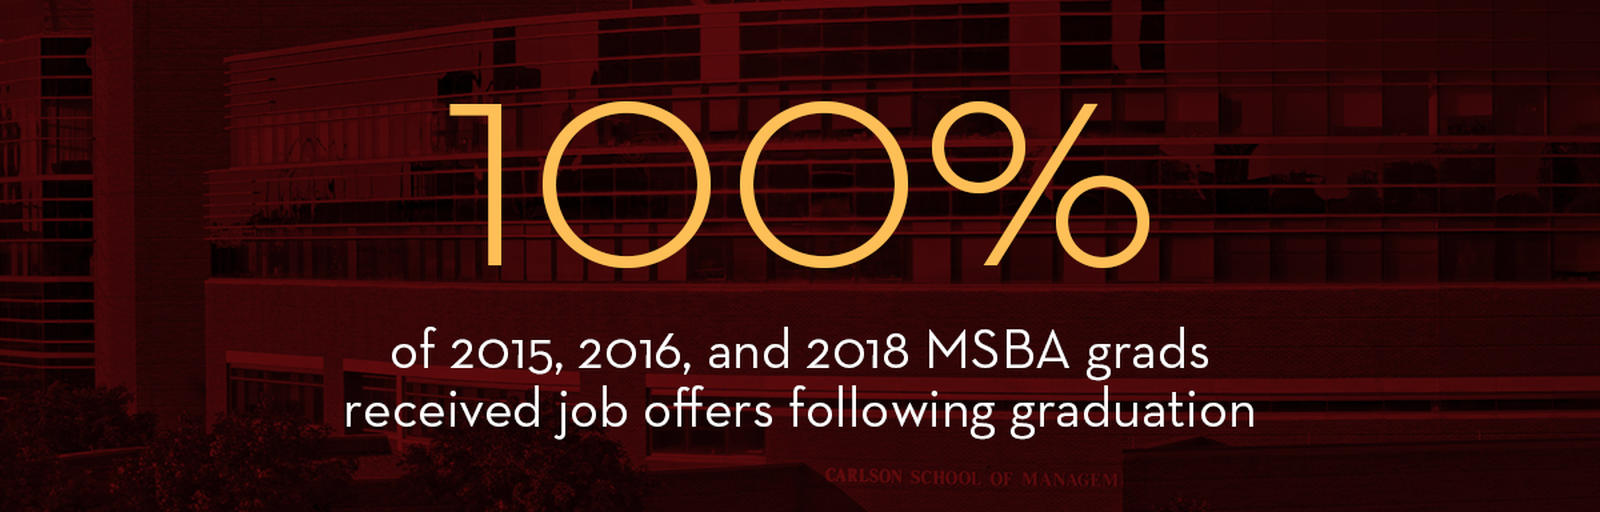 MSBA Placement at 100 Percent